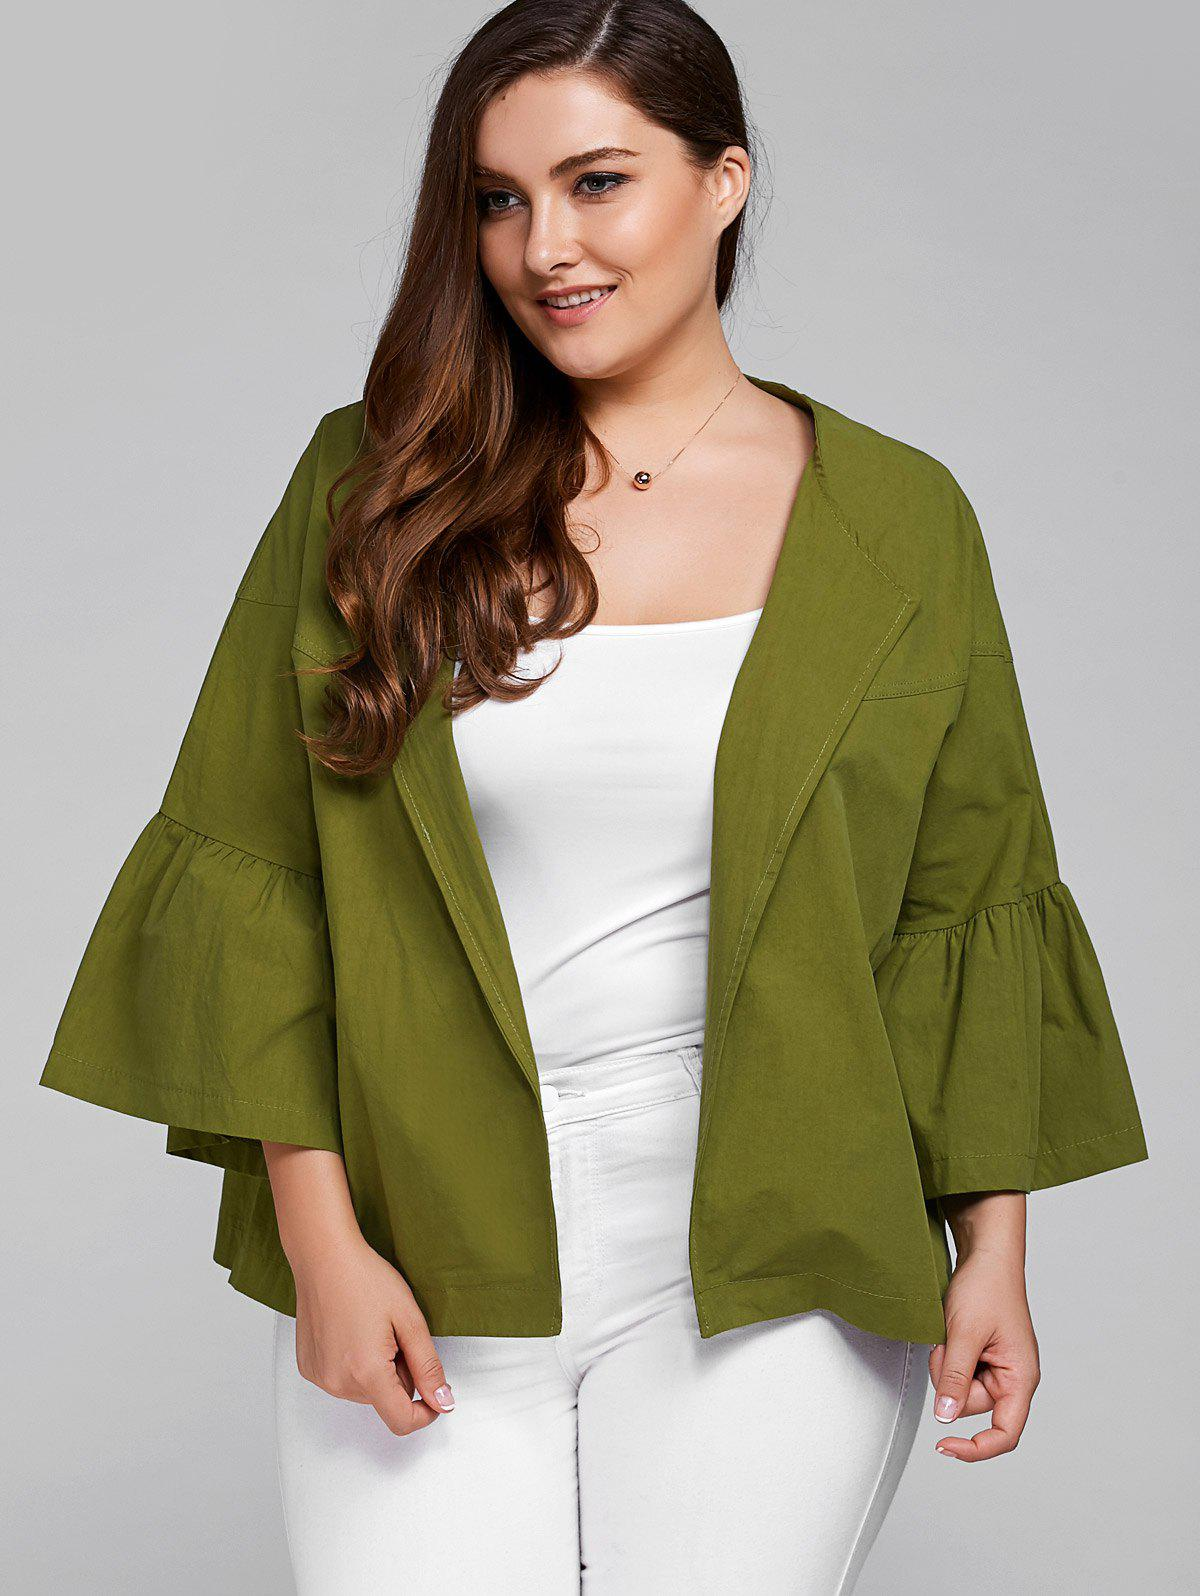 Lantern Sleeve Plus Size JacketWomen<br><br><br>Size: 2XL<br>Color: ARMY GREEN